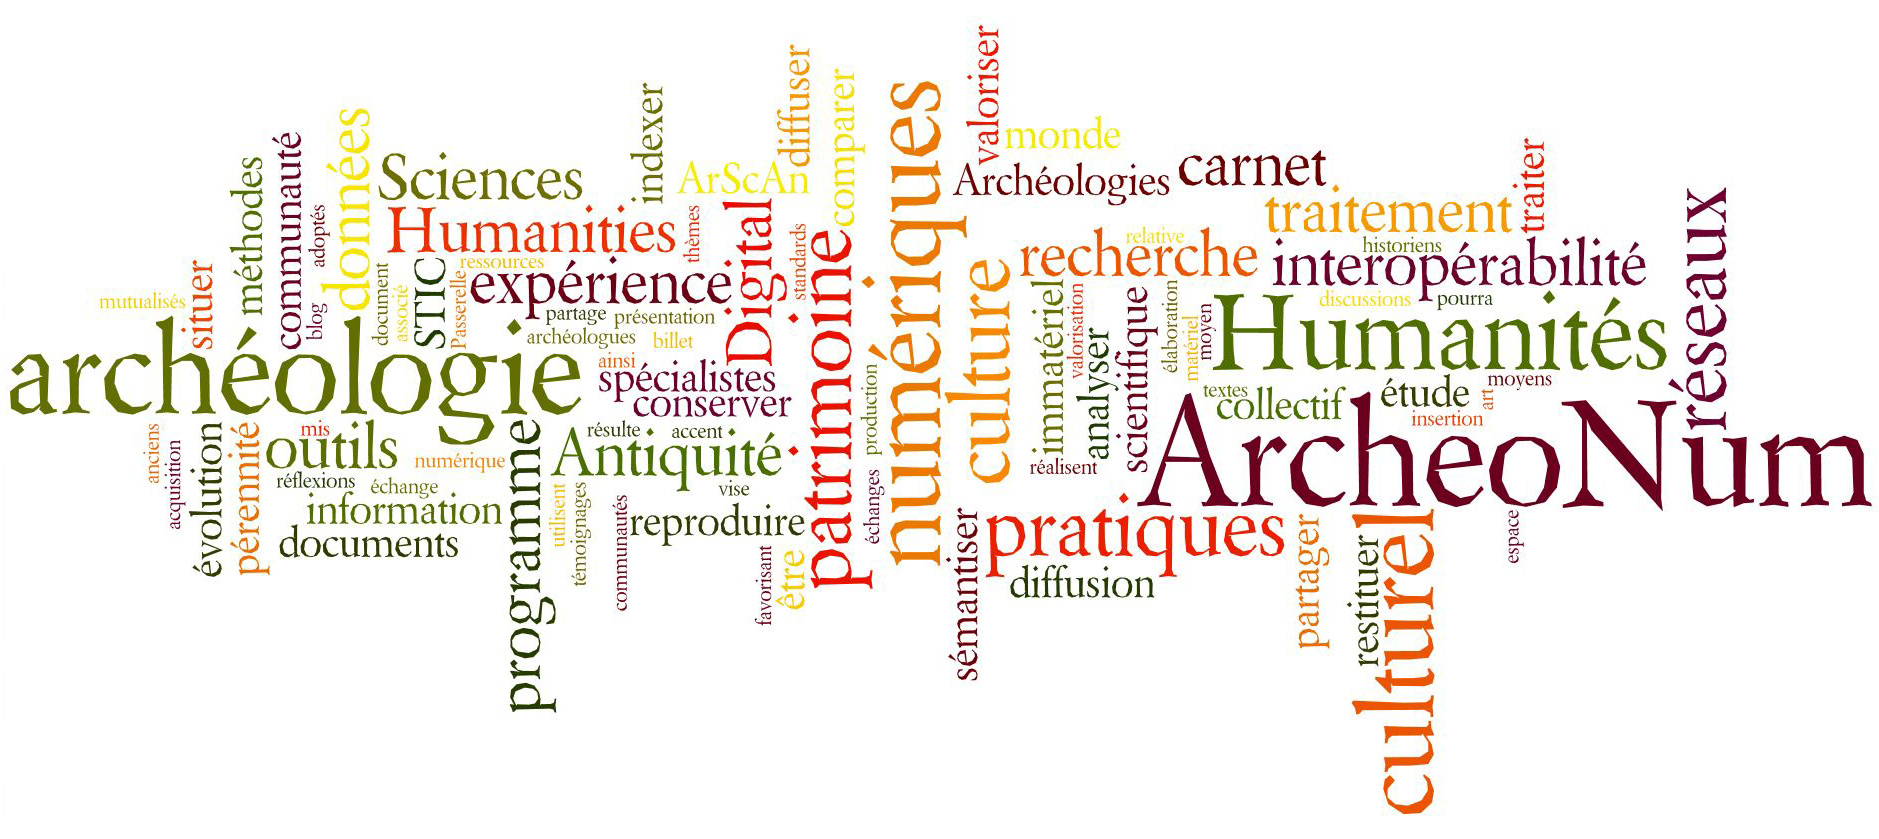 ArcheoNum-Wordle-20130430